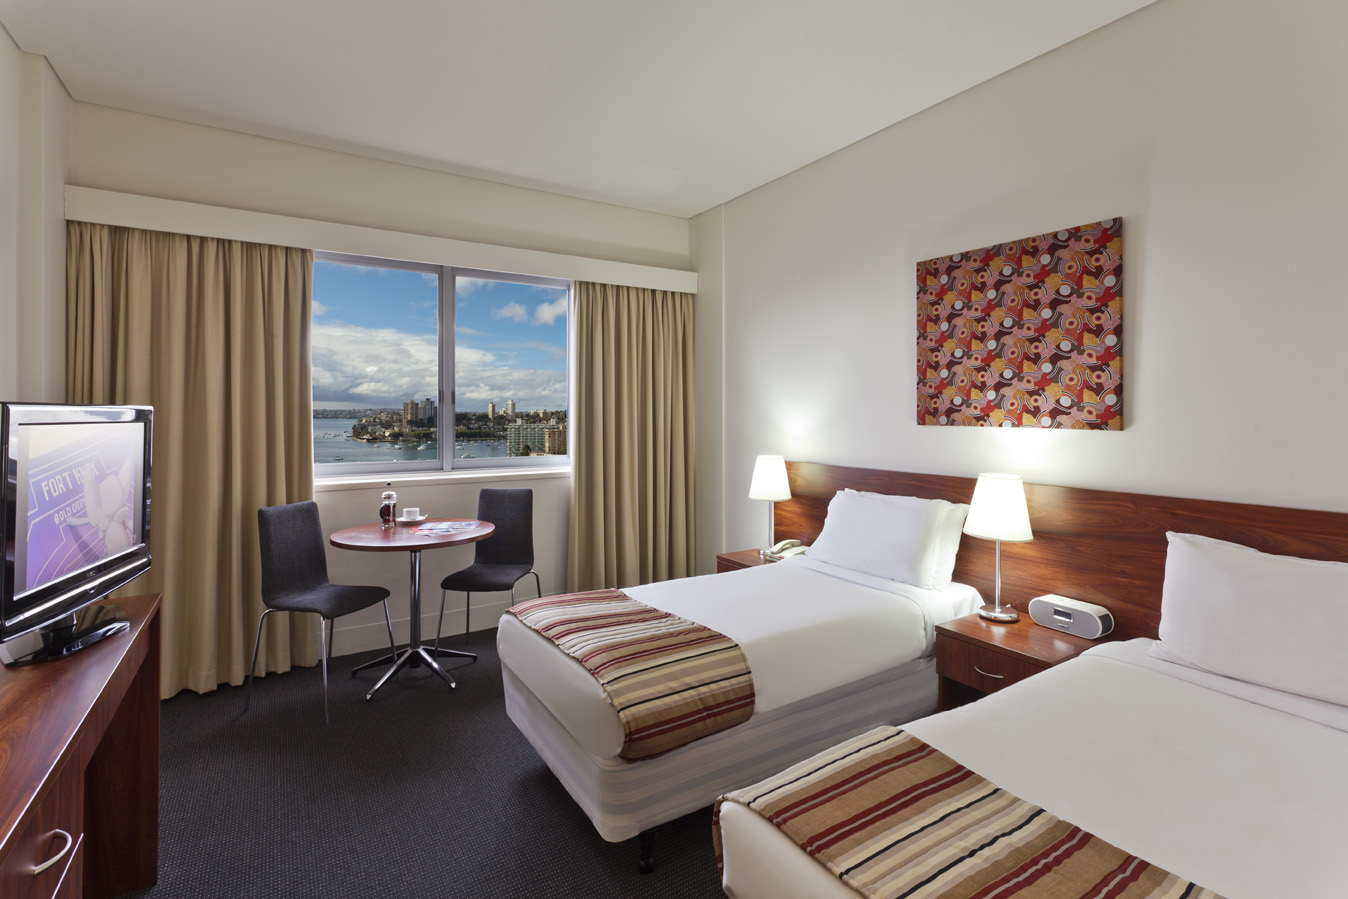 Twin Studio Room at The Macleay Hotel in Potts Point